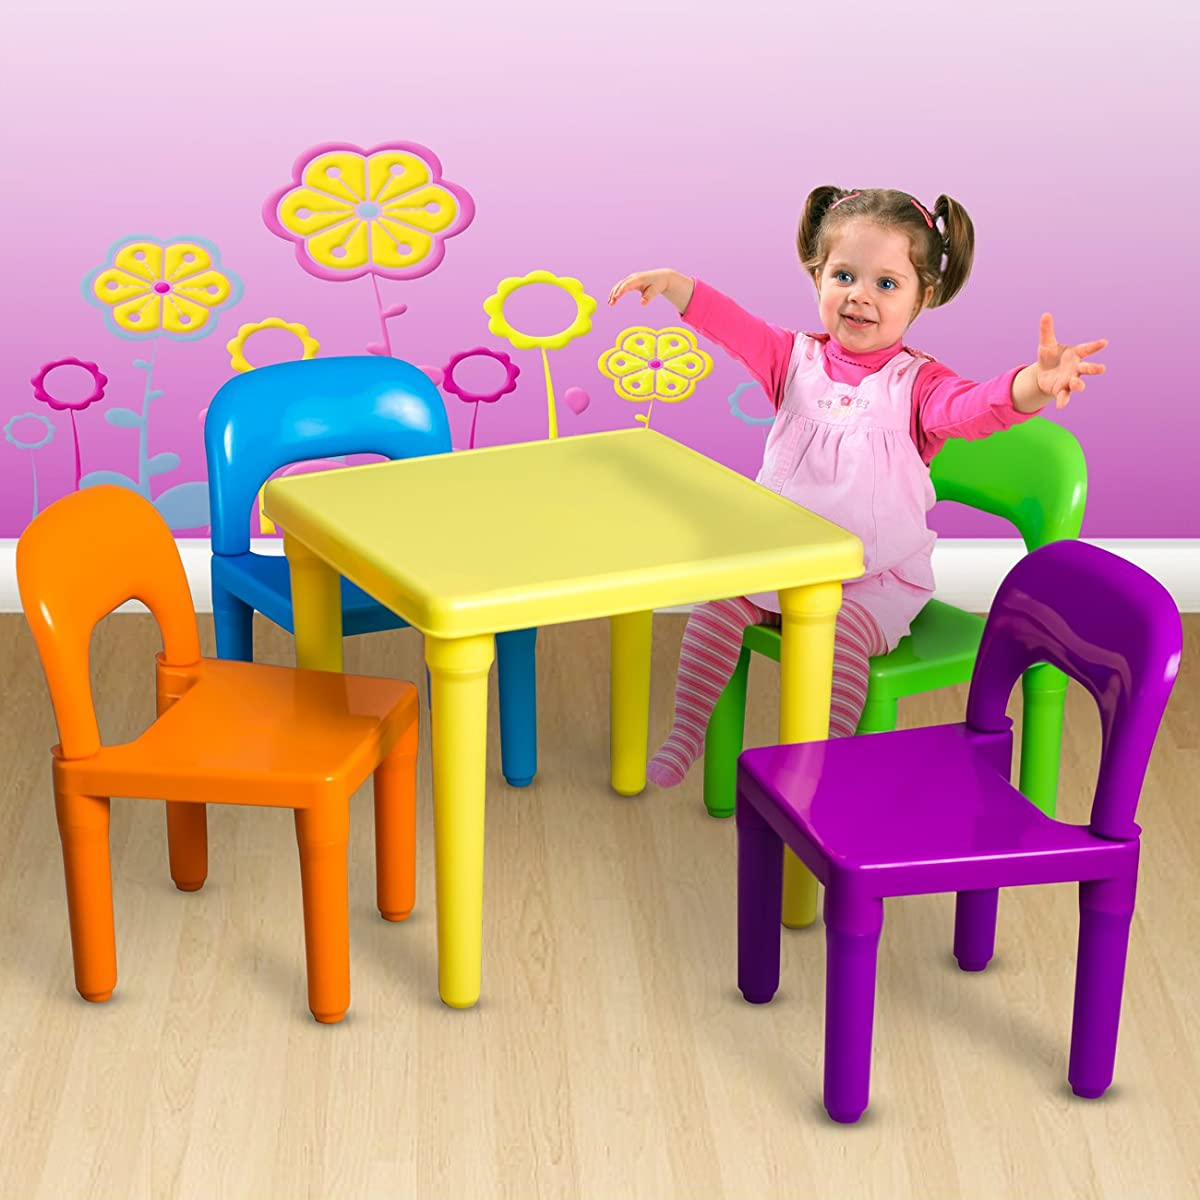 Children And Kids Table And Chairs Set Includes 4